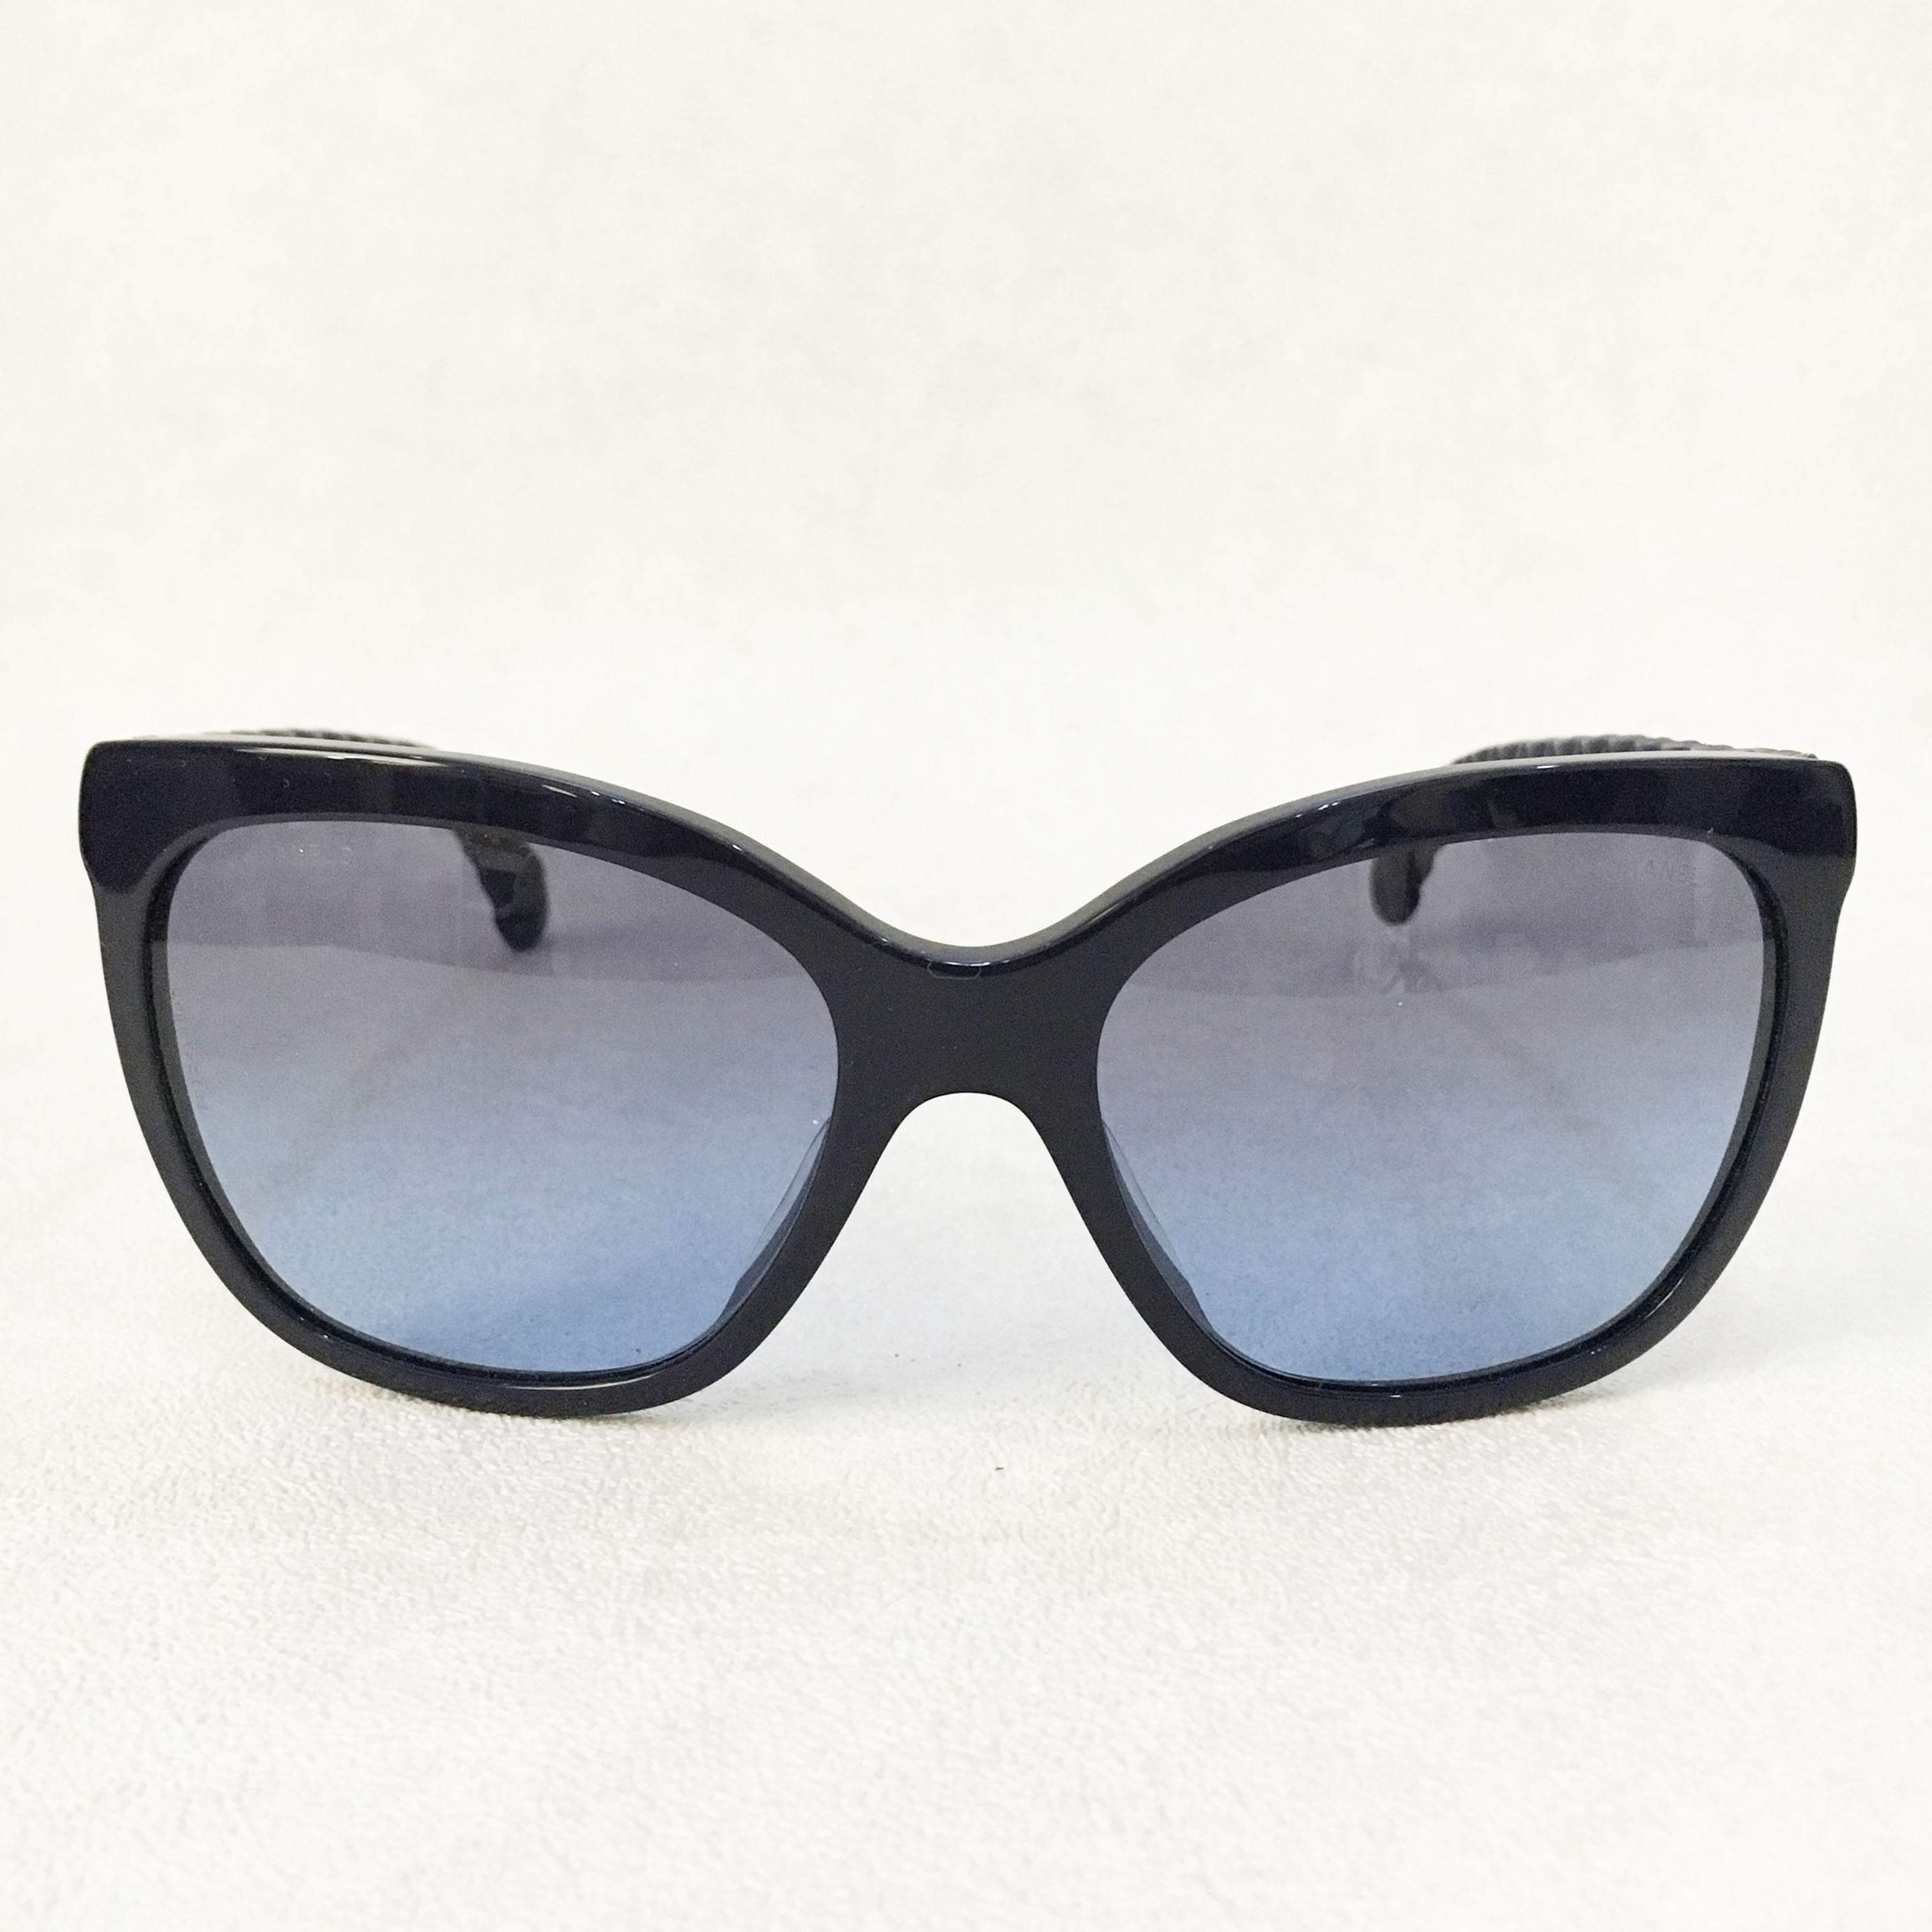 fac86fb73 Chanel Sunglasses with Leather Arms – Garderobe